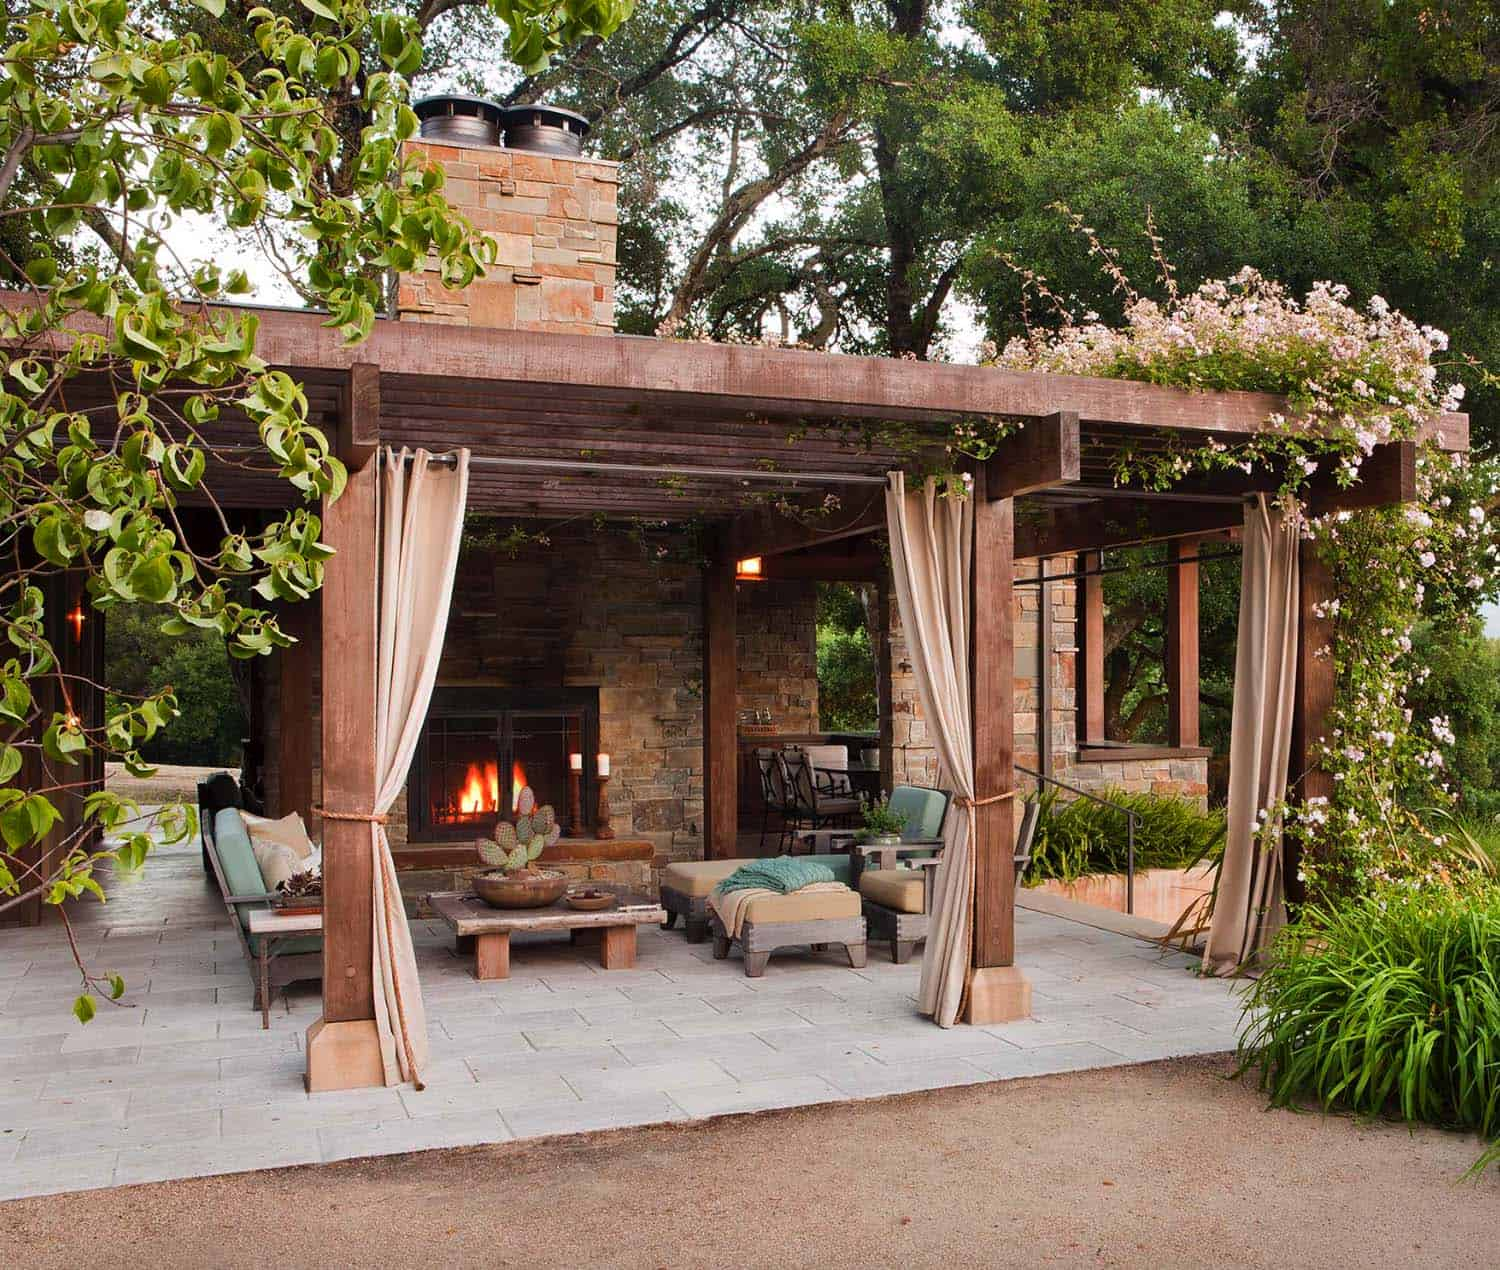 30+ Irresistible outdoor fireplace ideas that will leave ... on Outdoor Kitchen And Fireplace Ideas id=43290